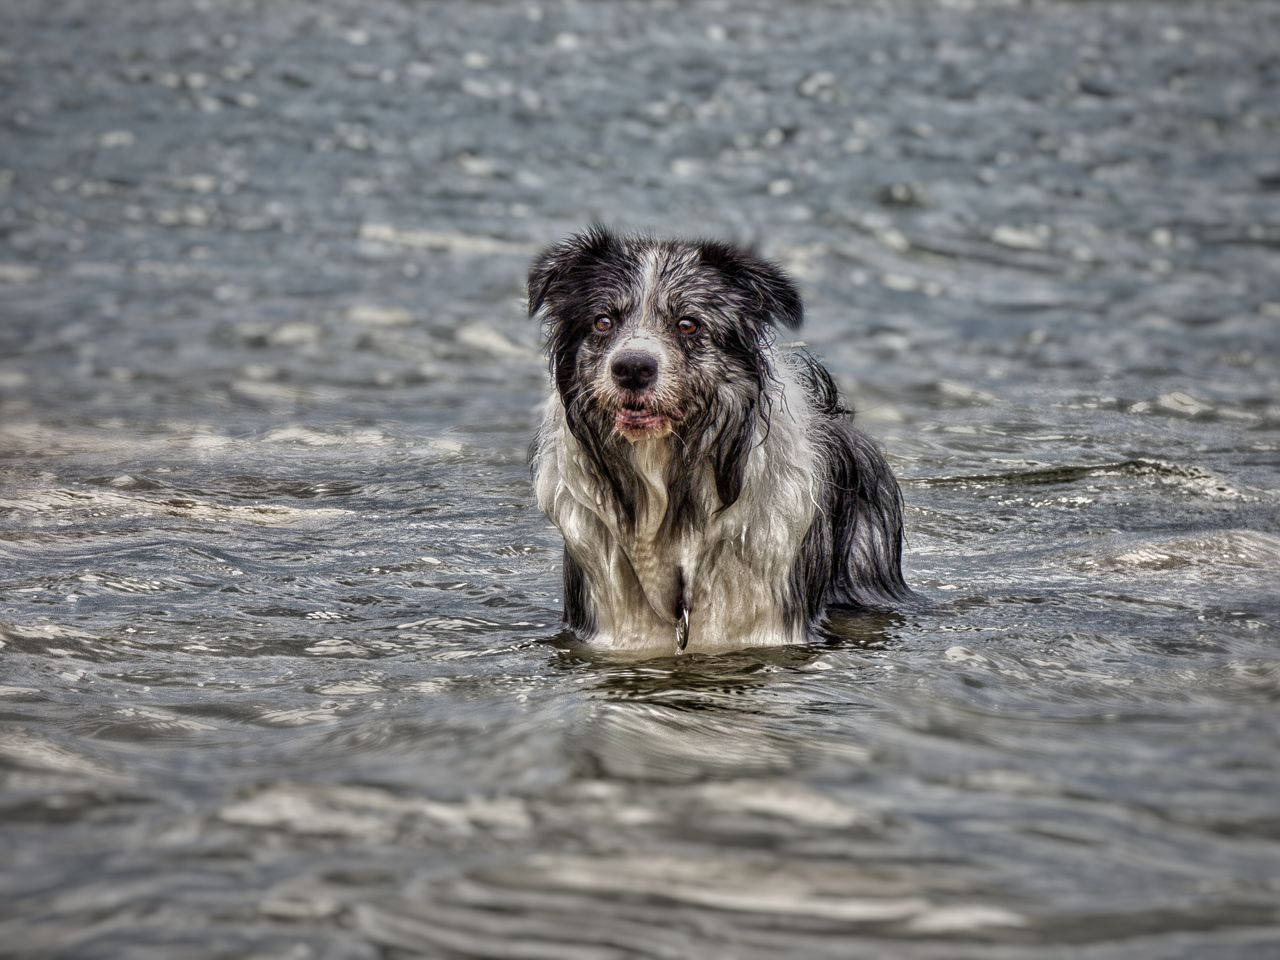 one animal, canine, animal themes, dog, mammal, domestic, animal, pets, domestic animals, vertebrate, water, portrait, day, wet, looking at camera, nature, waterfront, no people, selective focus, outdoors, animal head